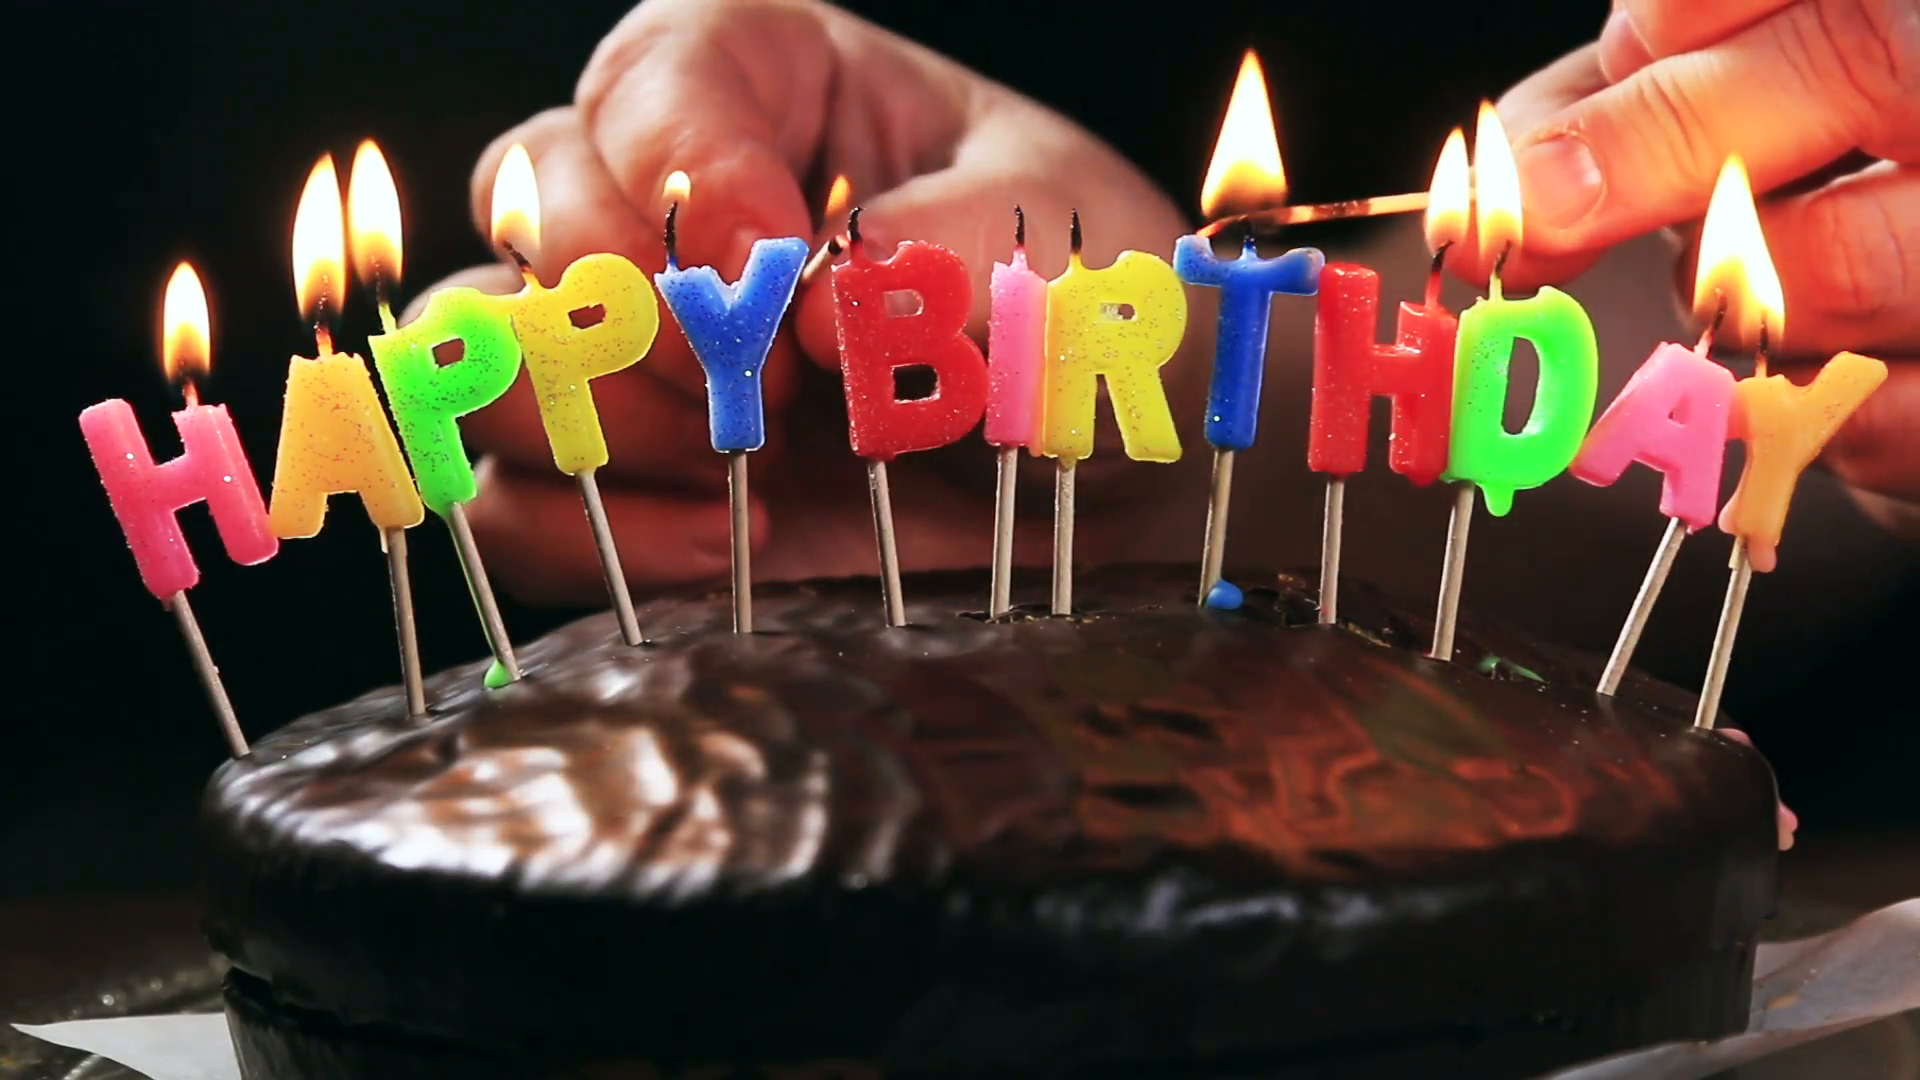 Happy Birthday Cakes Pictures Lighted Candles On A Happy Birthday Cake Candles With The Words